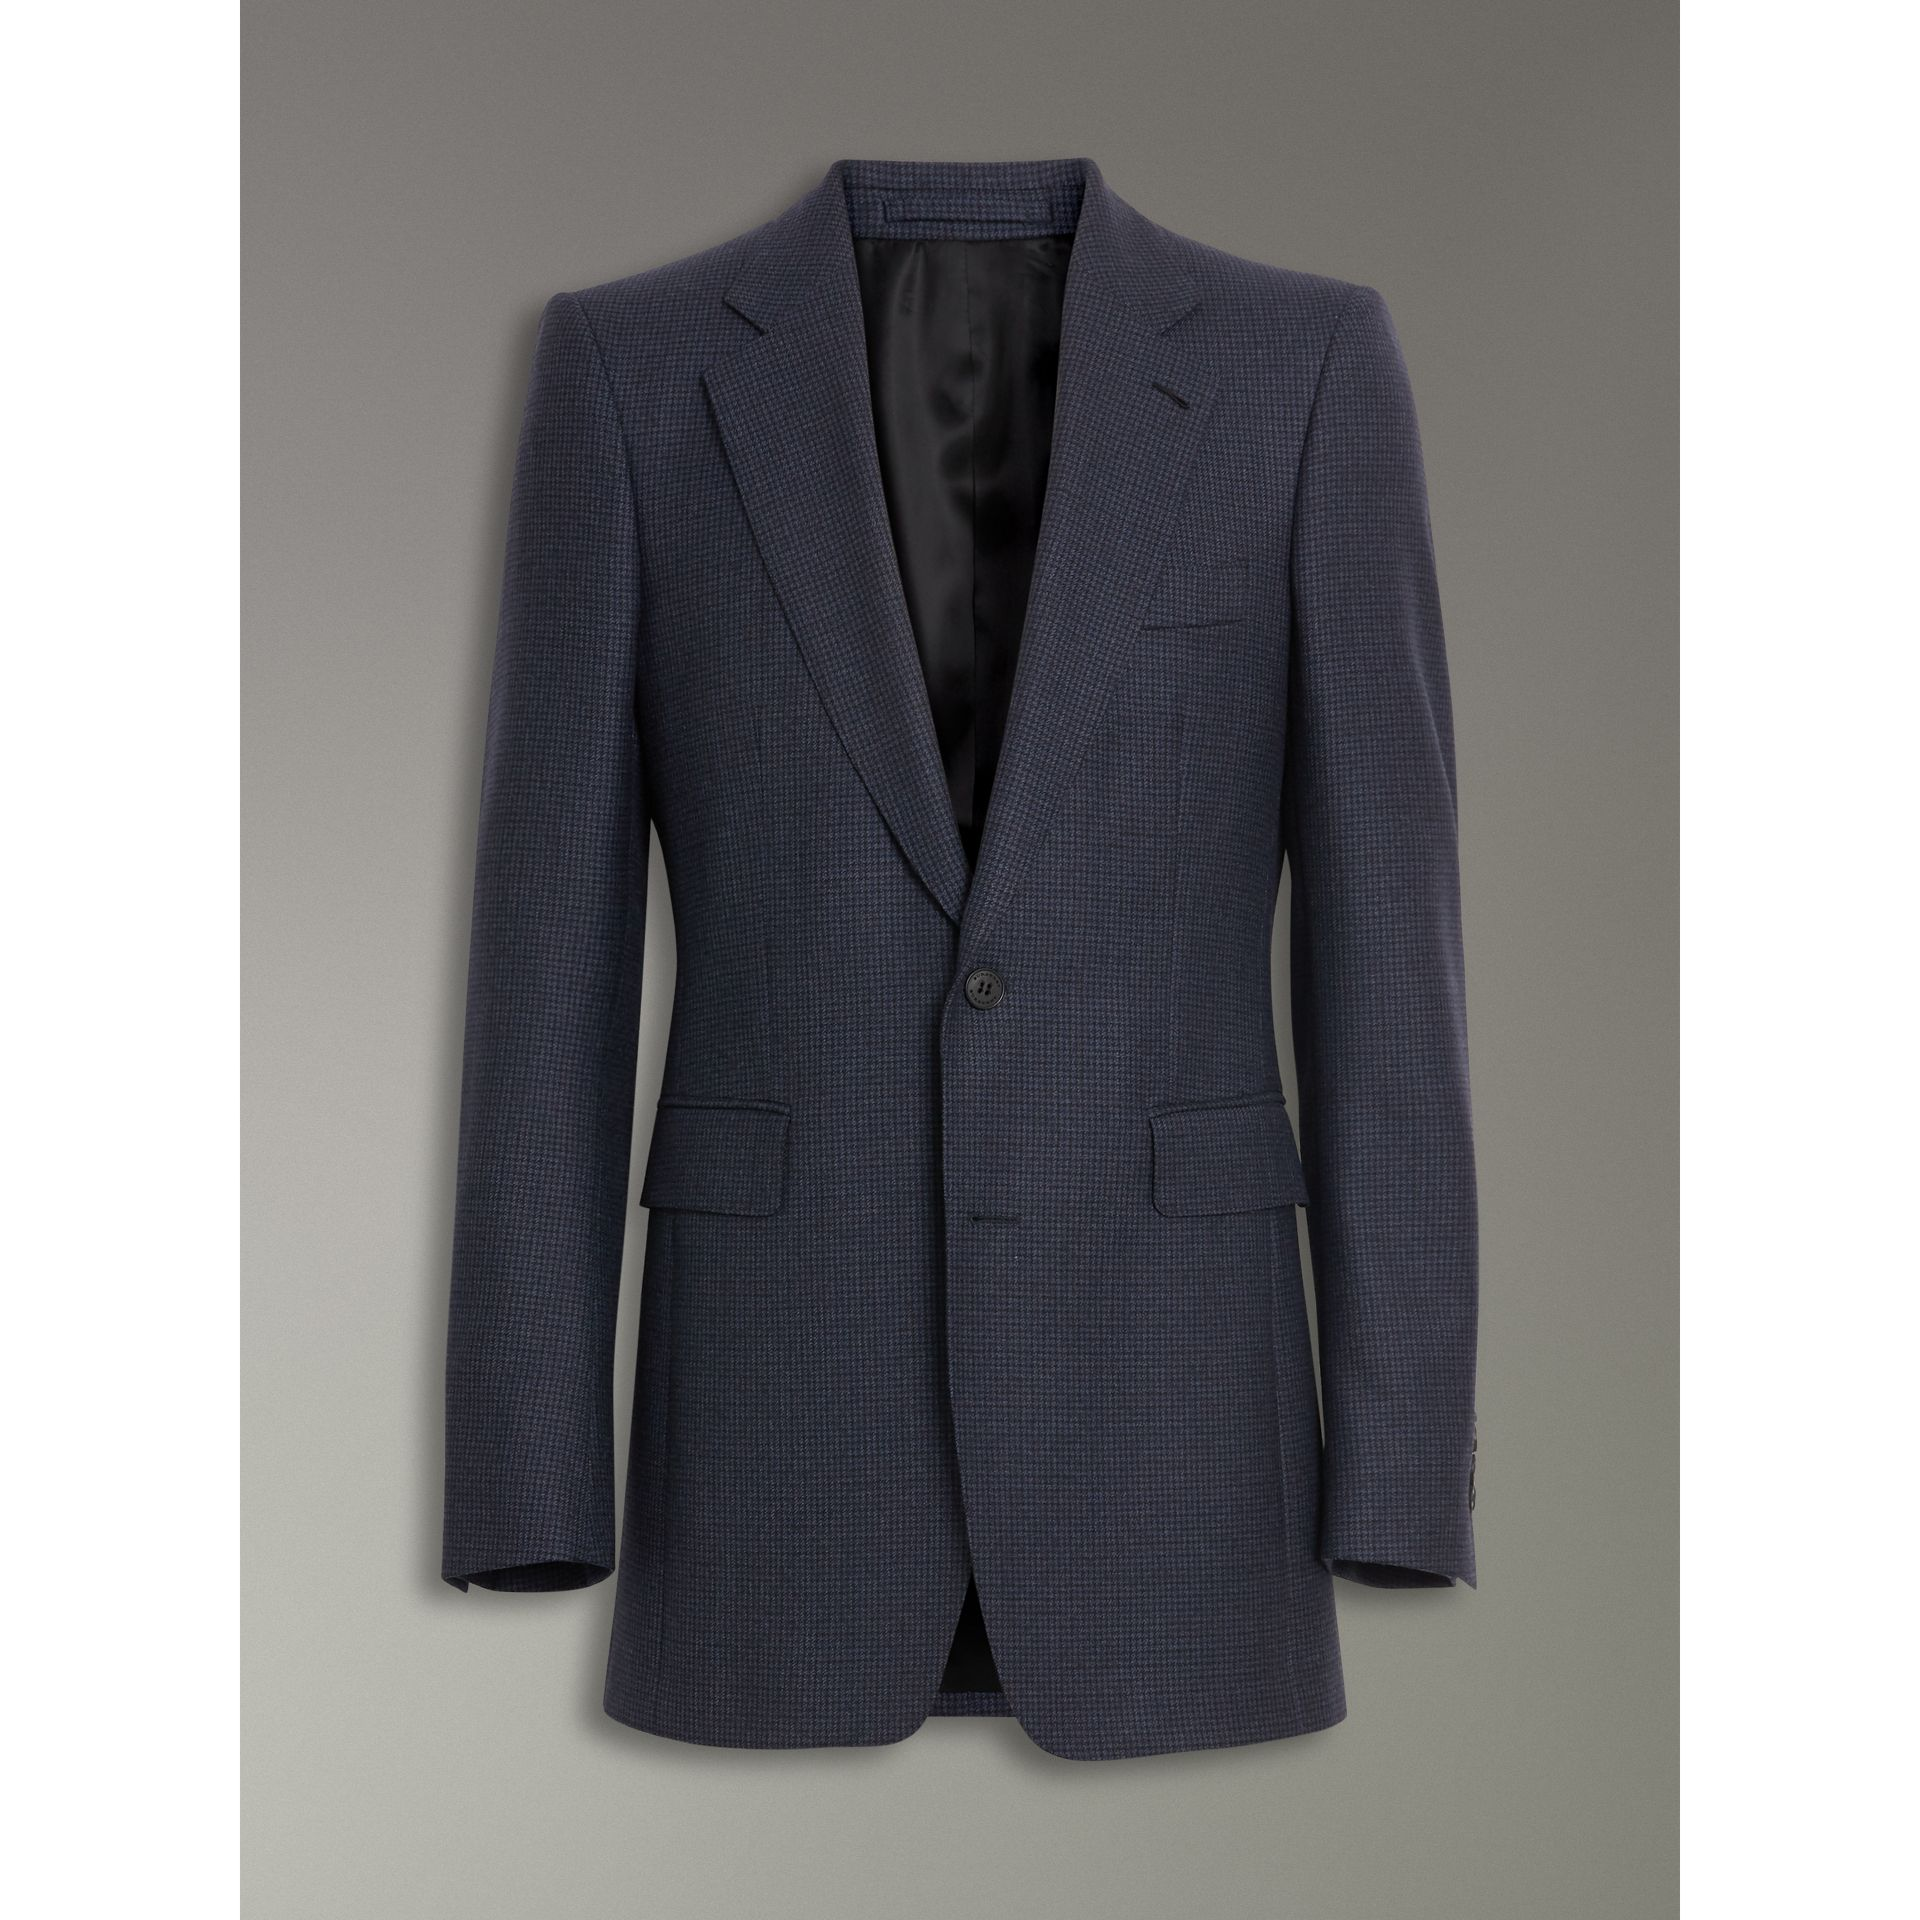 Slim Fit Puppytooth Wool Suit in Navy - Men | Burberry United States - gallery image 3